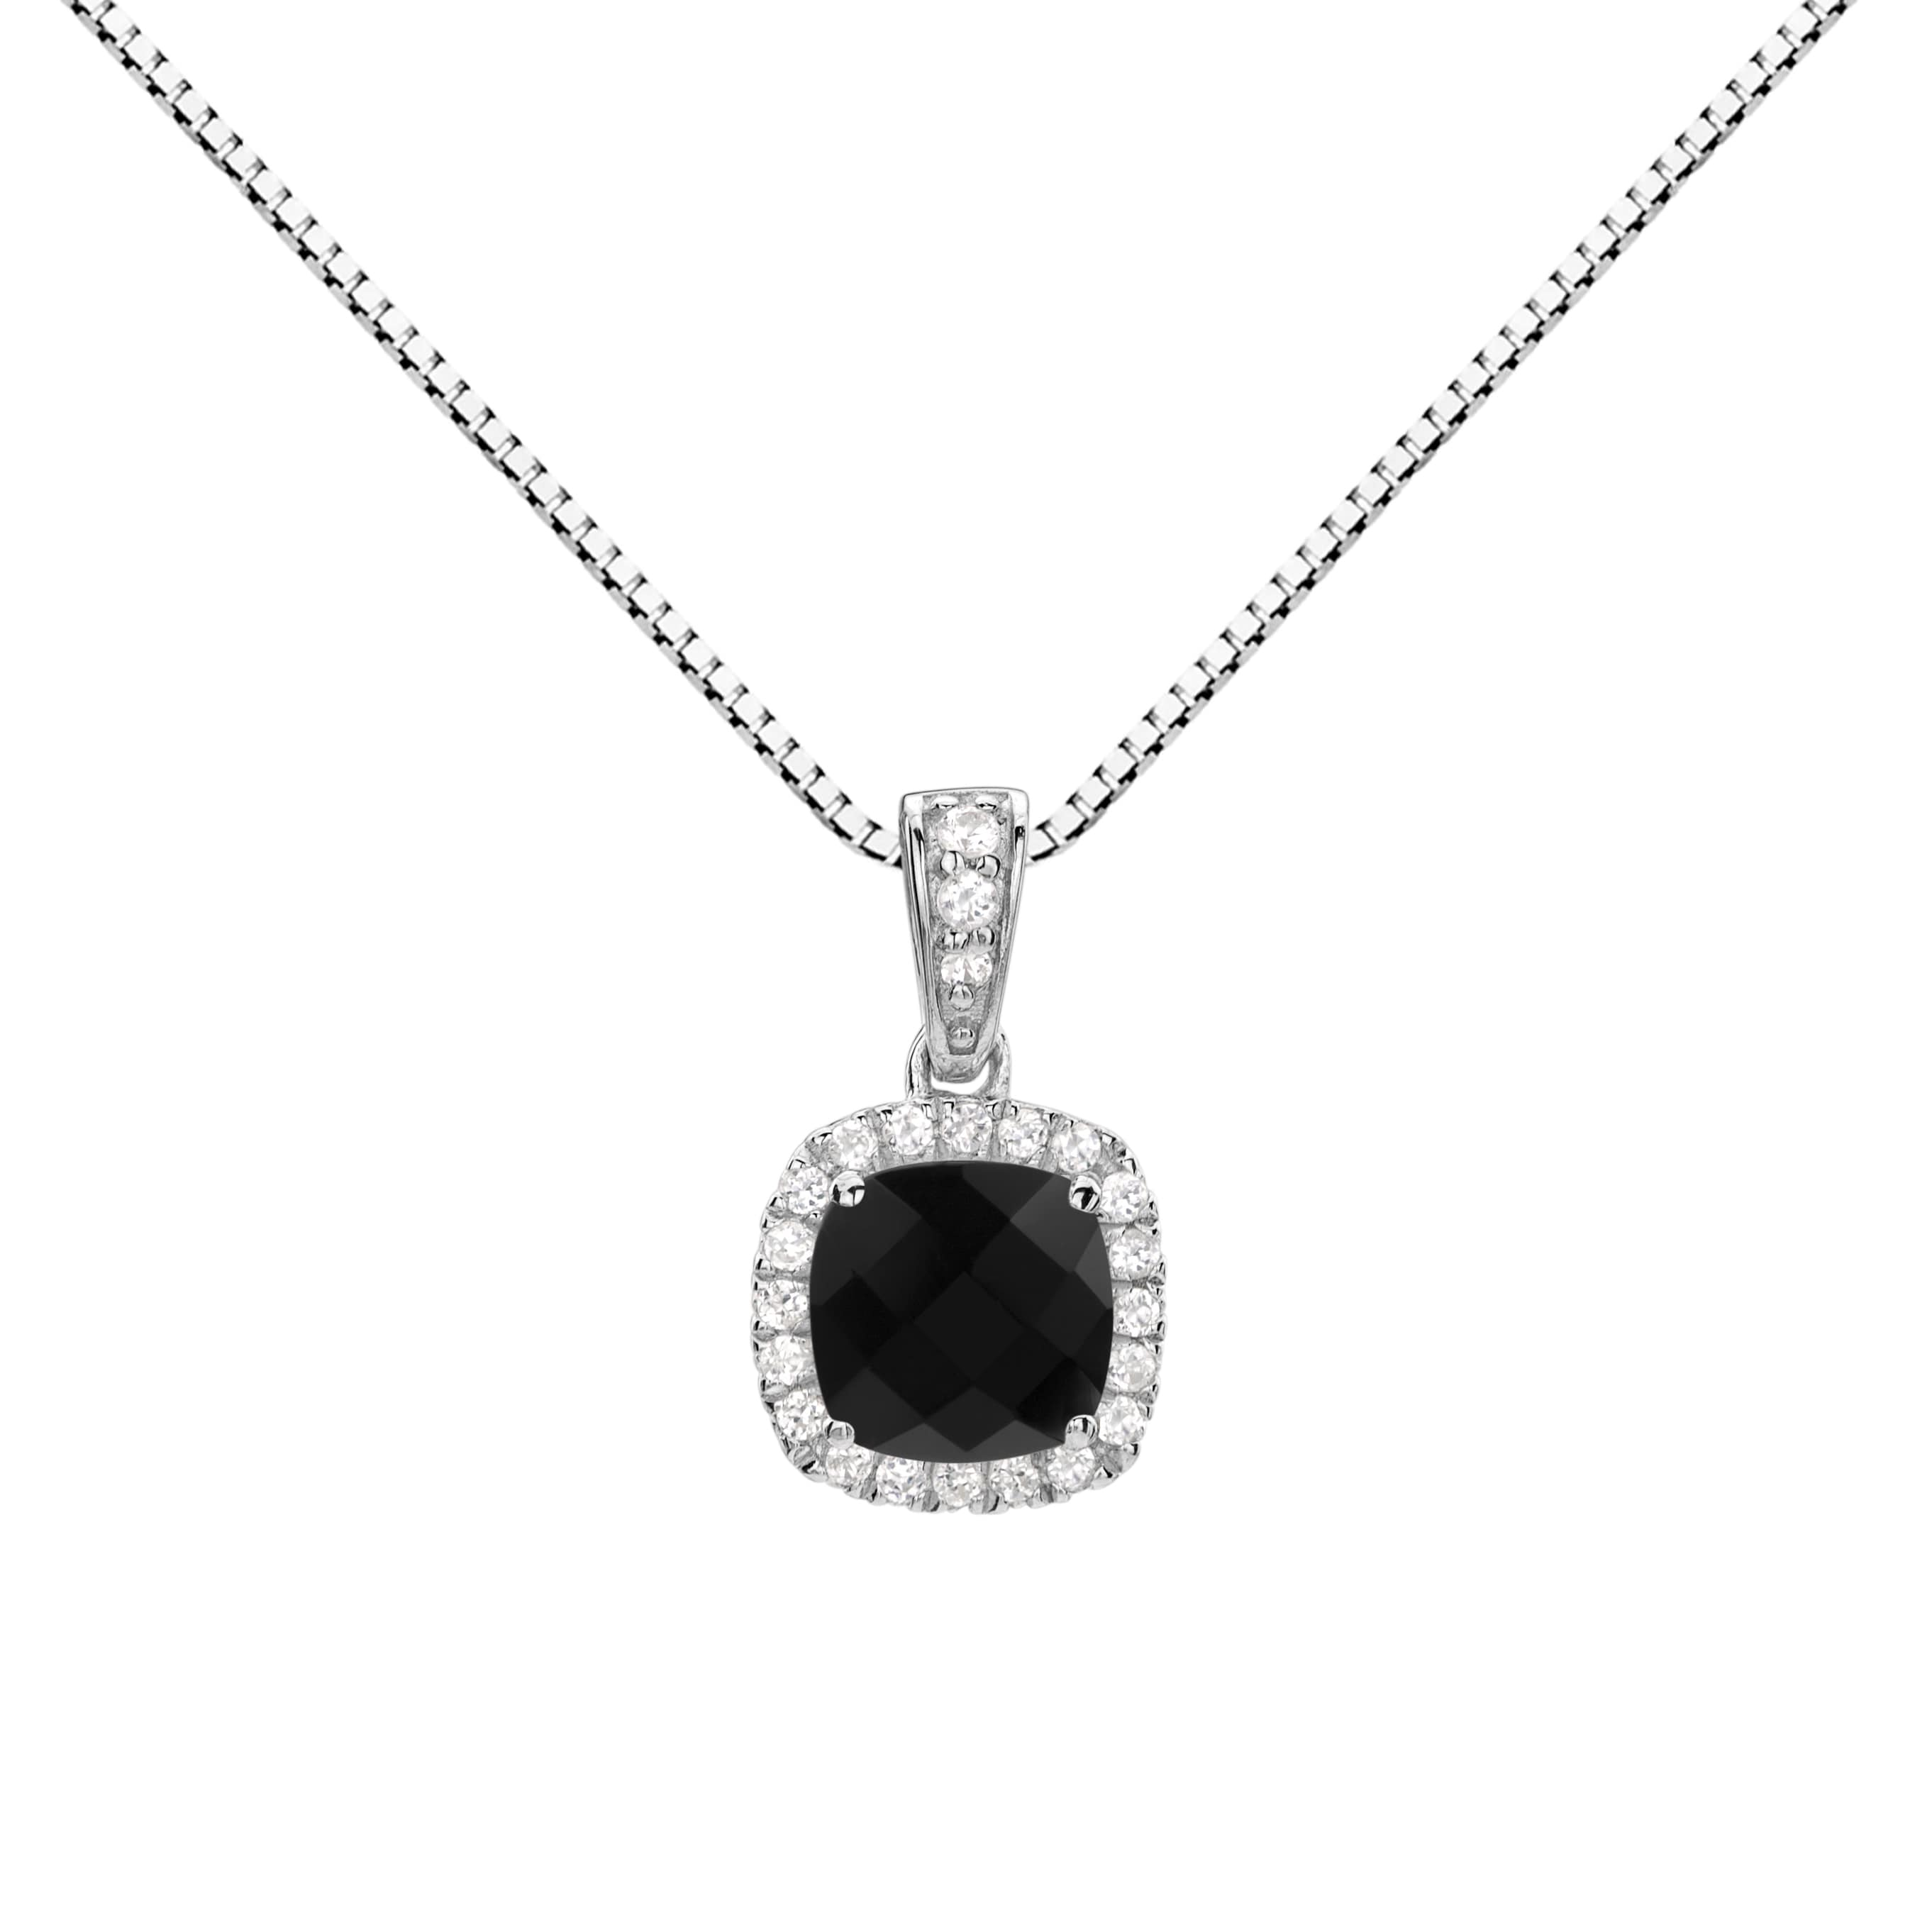 sale onyx necklace cubist id diamonds at for jewelry j pendant necklaces master with emeralds and